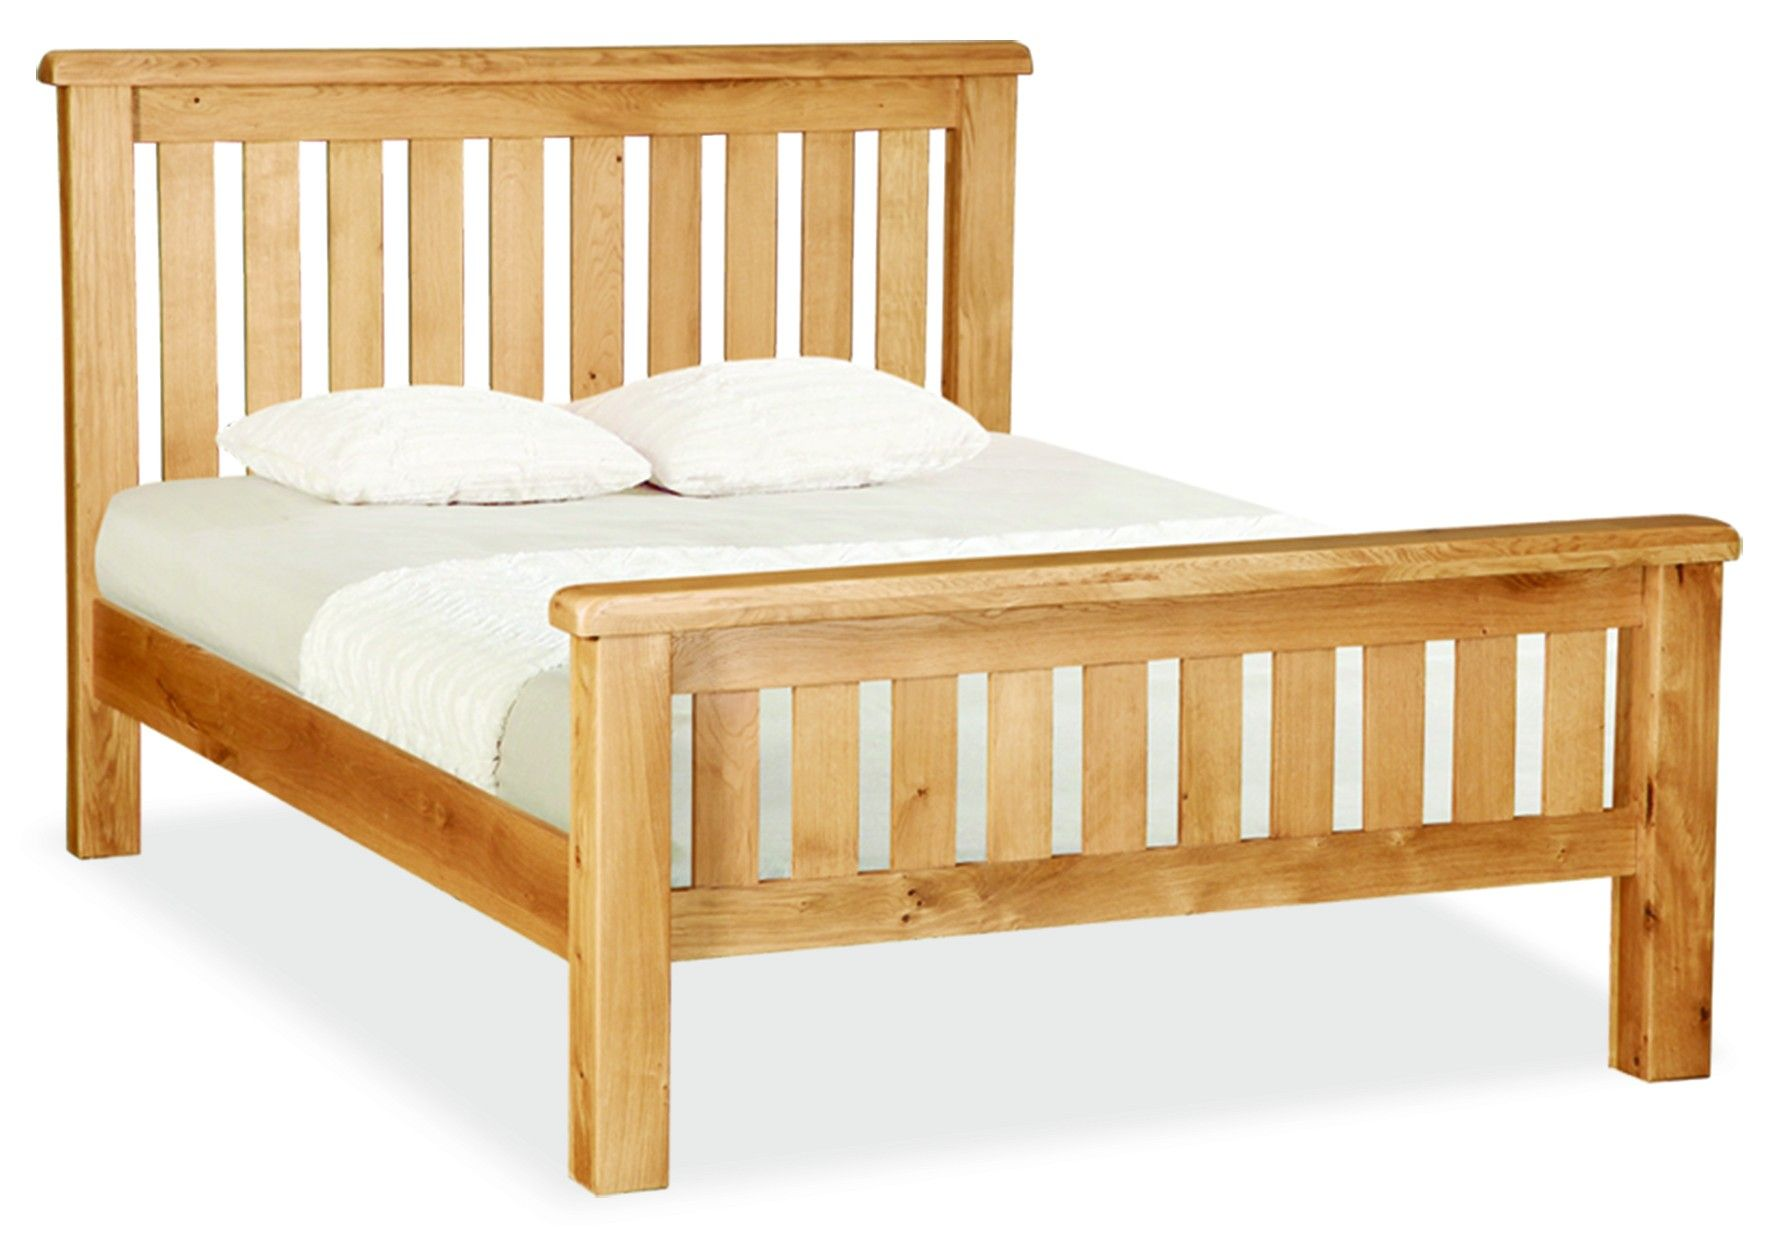 Lederbett 160x200 Traditional Queen Size Bed Frame Google Search Beds